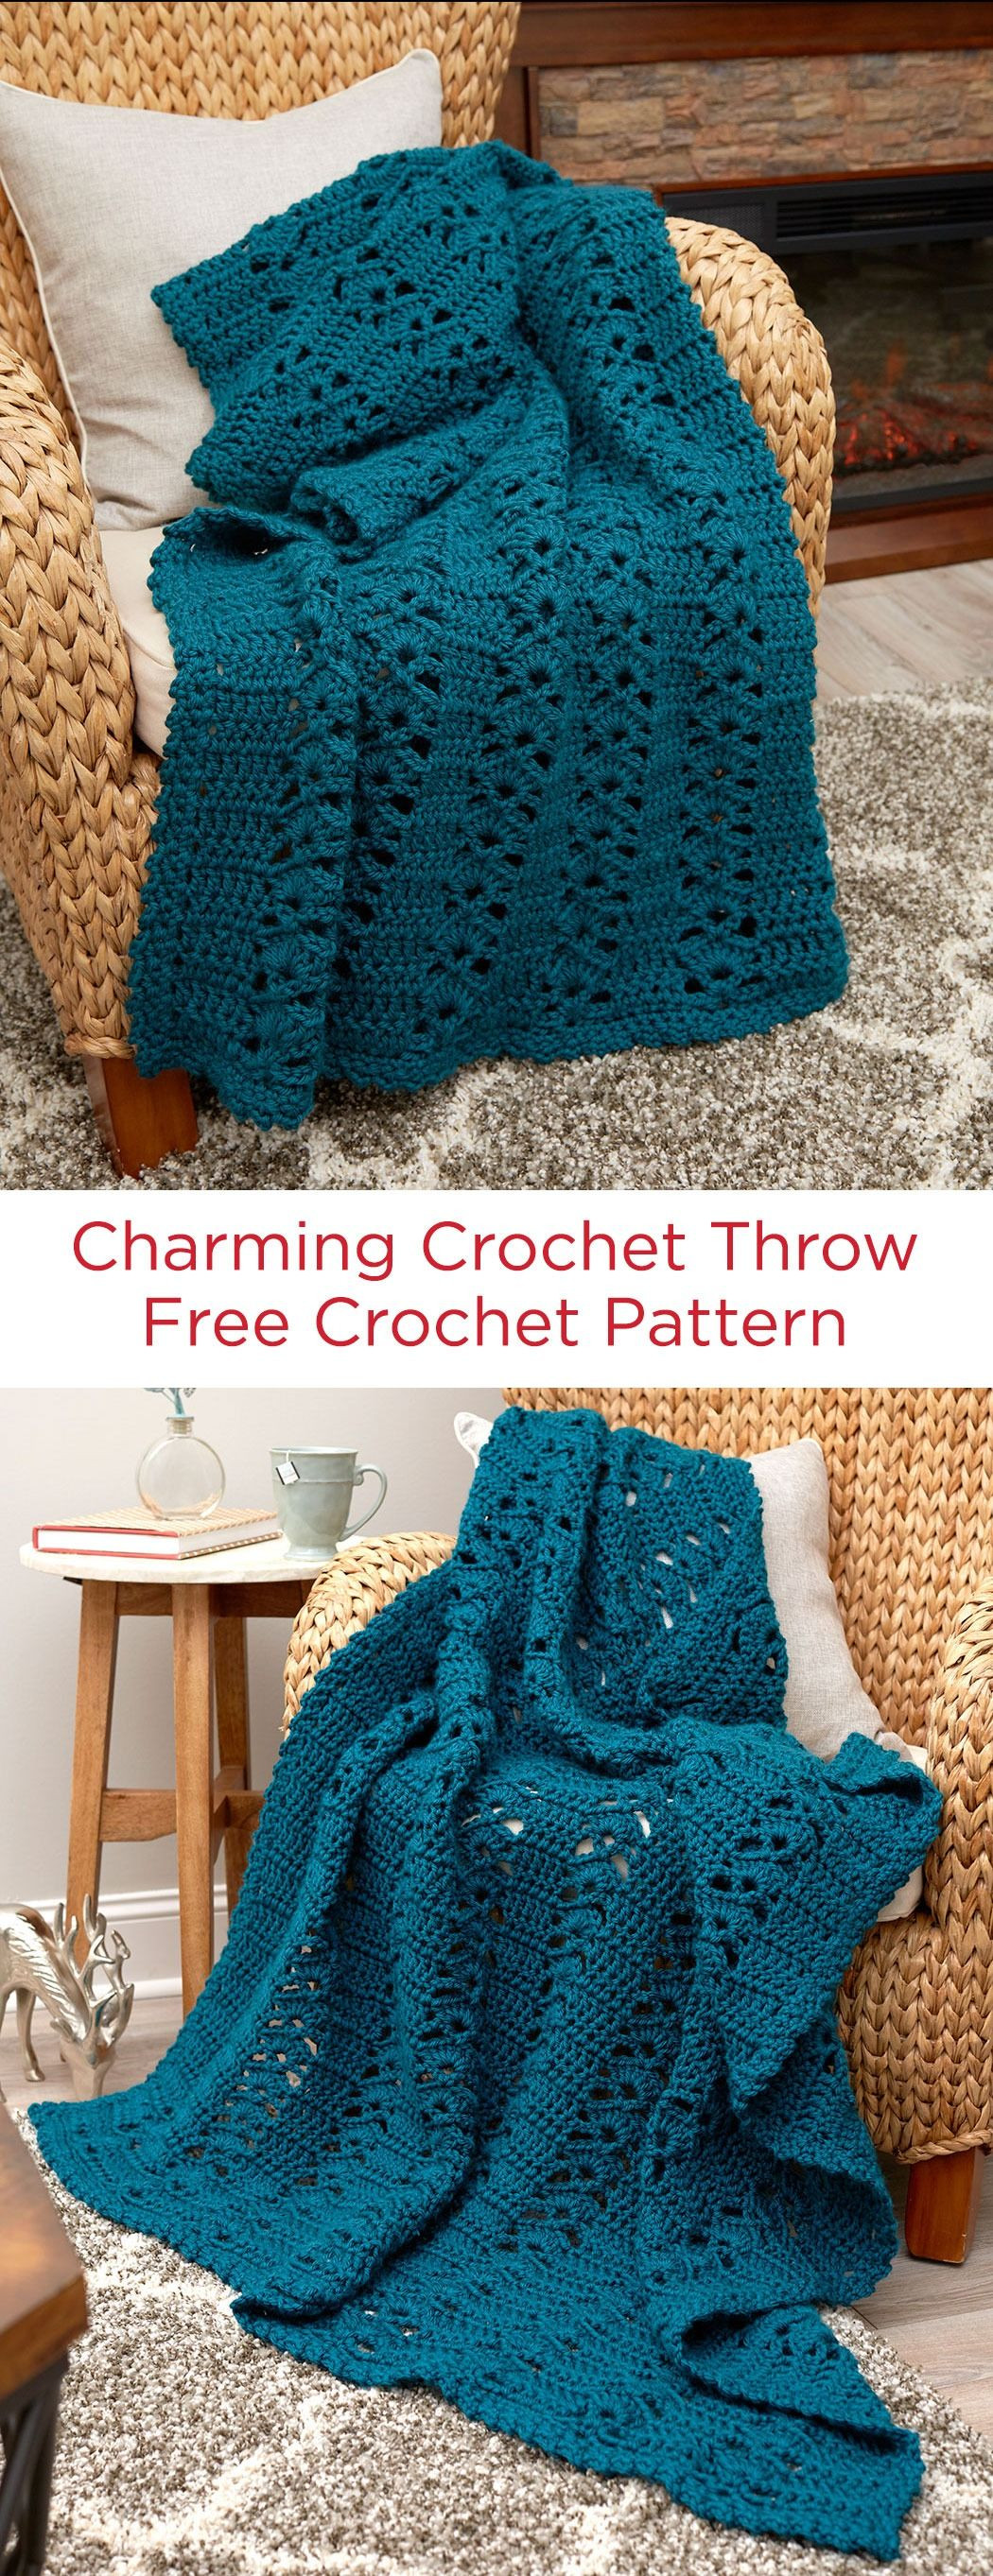 Red Heart Yarn Patterns Elegant Charming Crochet Throw Free Crochet Pattern In Red Heart Of Luxury 48 Images Red Heart Yarn Patterns